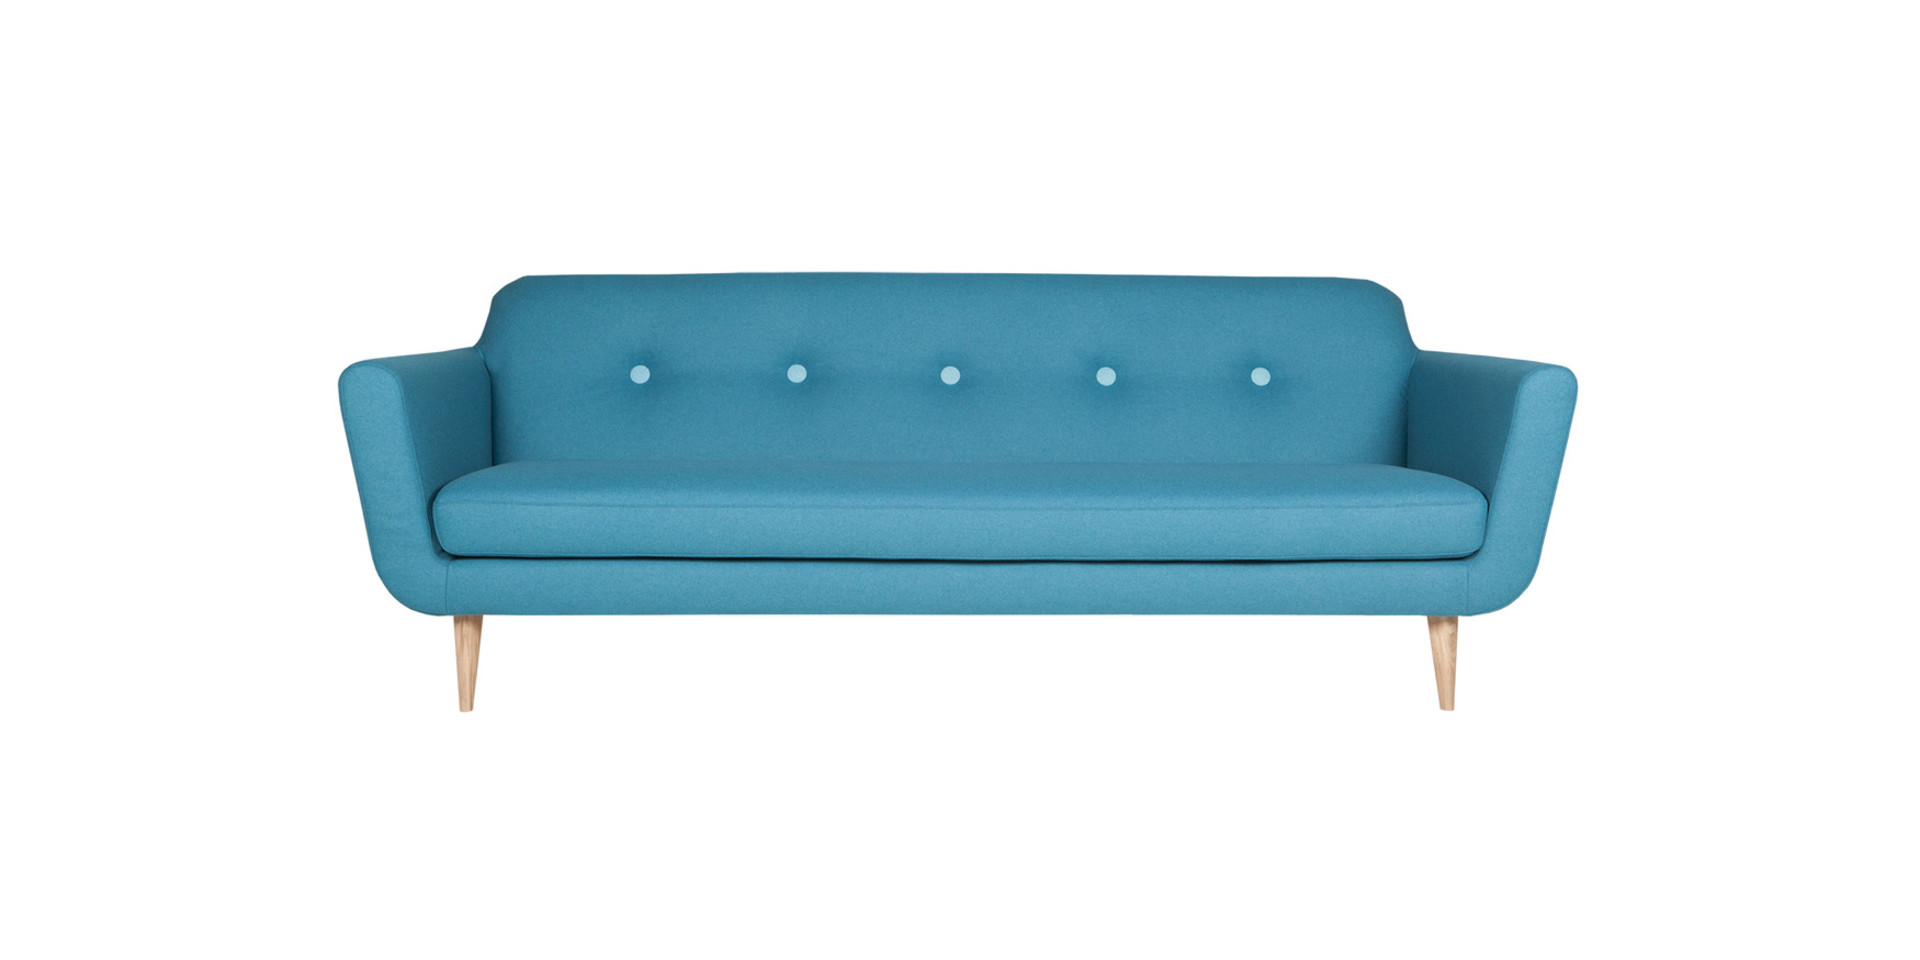 OTTO_3seater_panno2240_turquoise_buttons_panno2274_light_turquoise_1